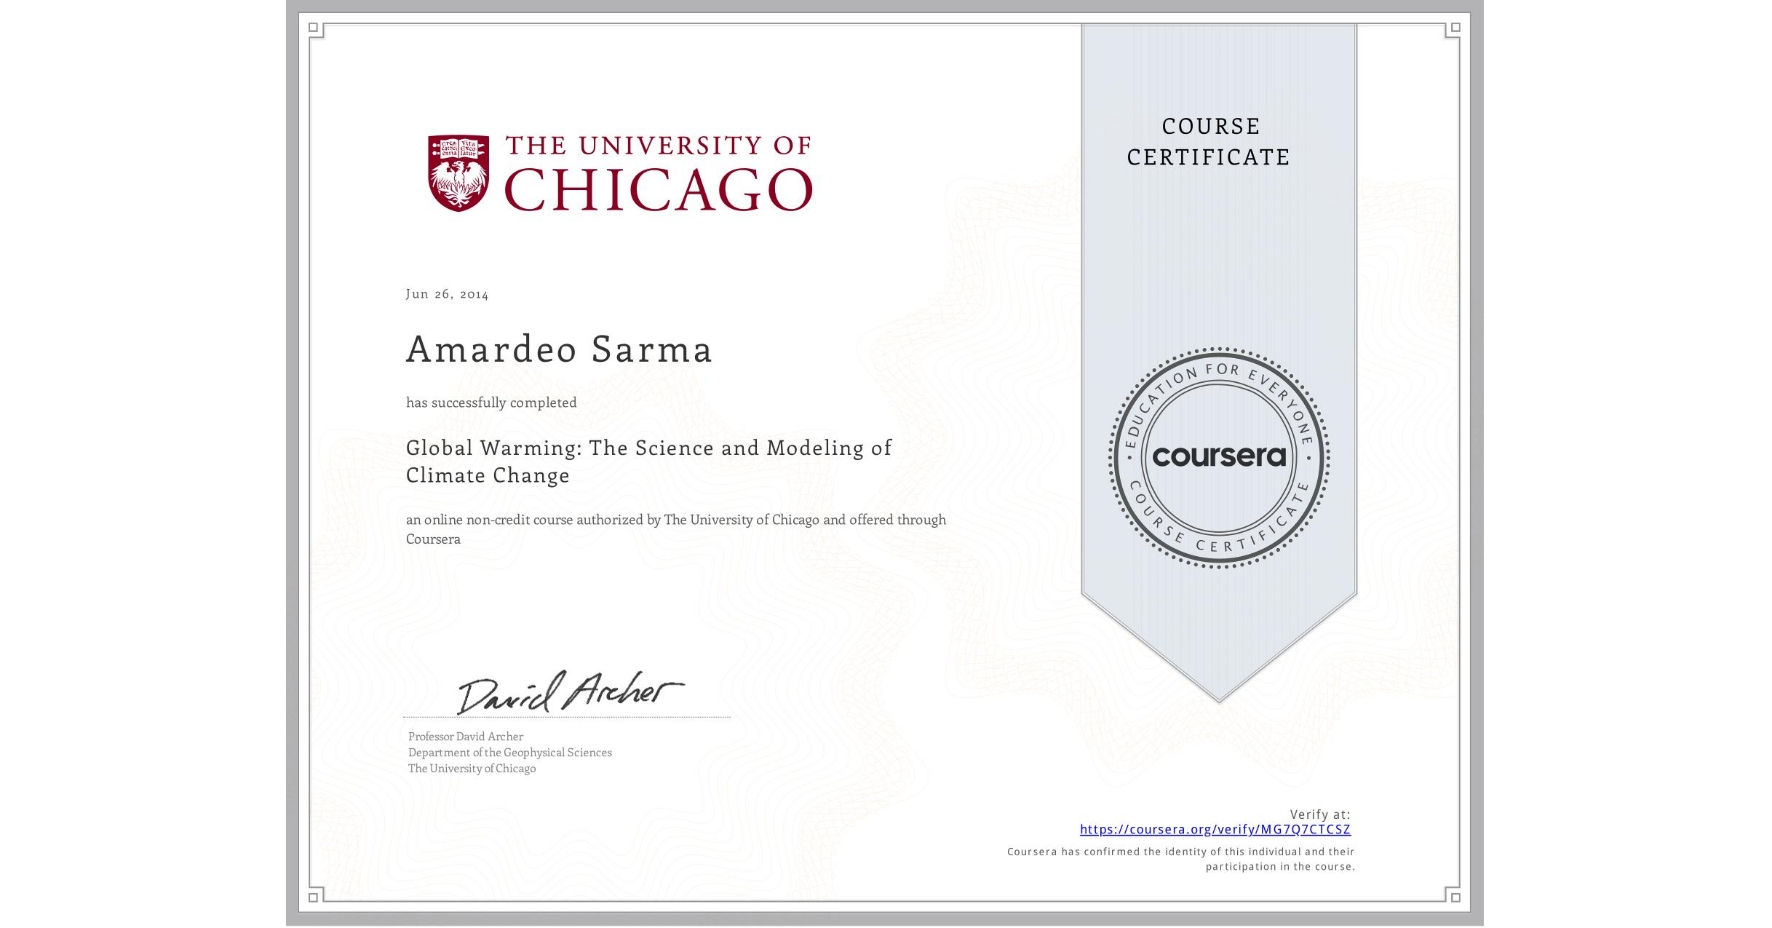 View certificate for Amardeo Sarma, Global Warming: The Science and Modeling of Climate Change, an online non-credit course authorized by The University of Chicago and offered through Coursera